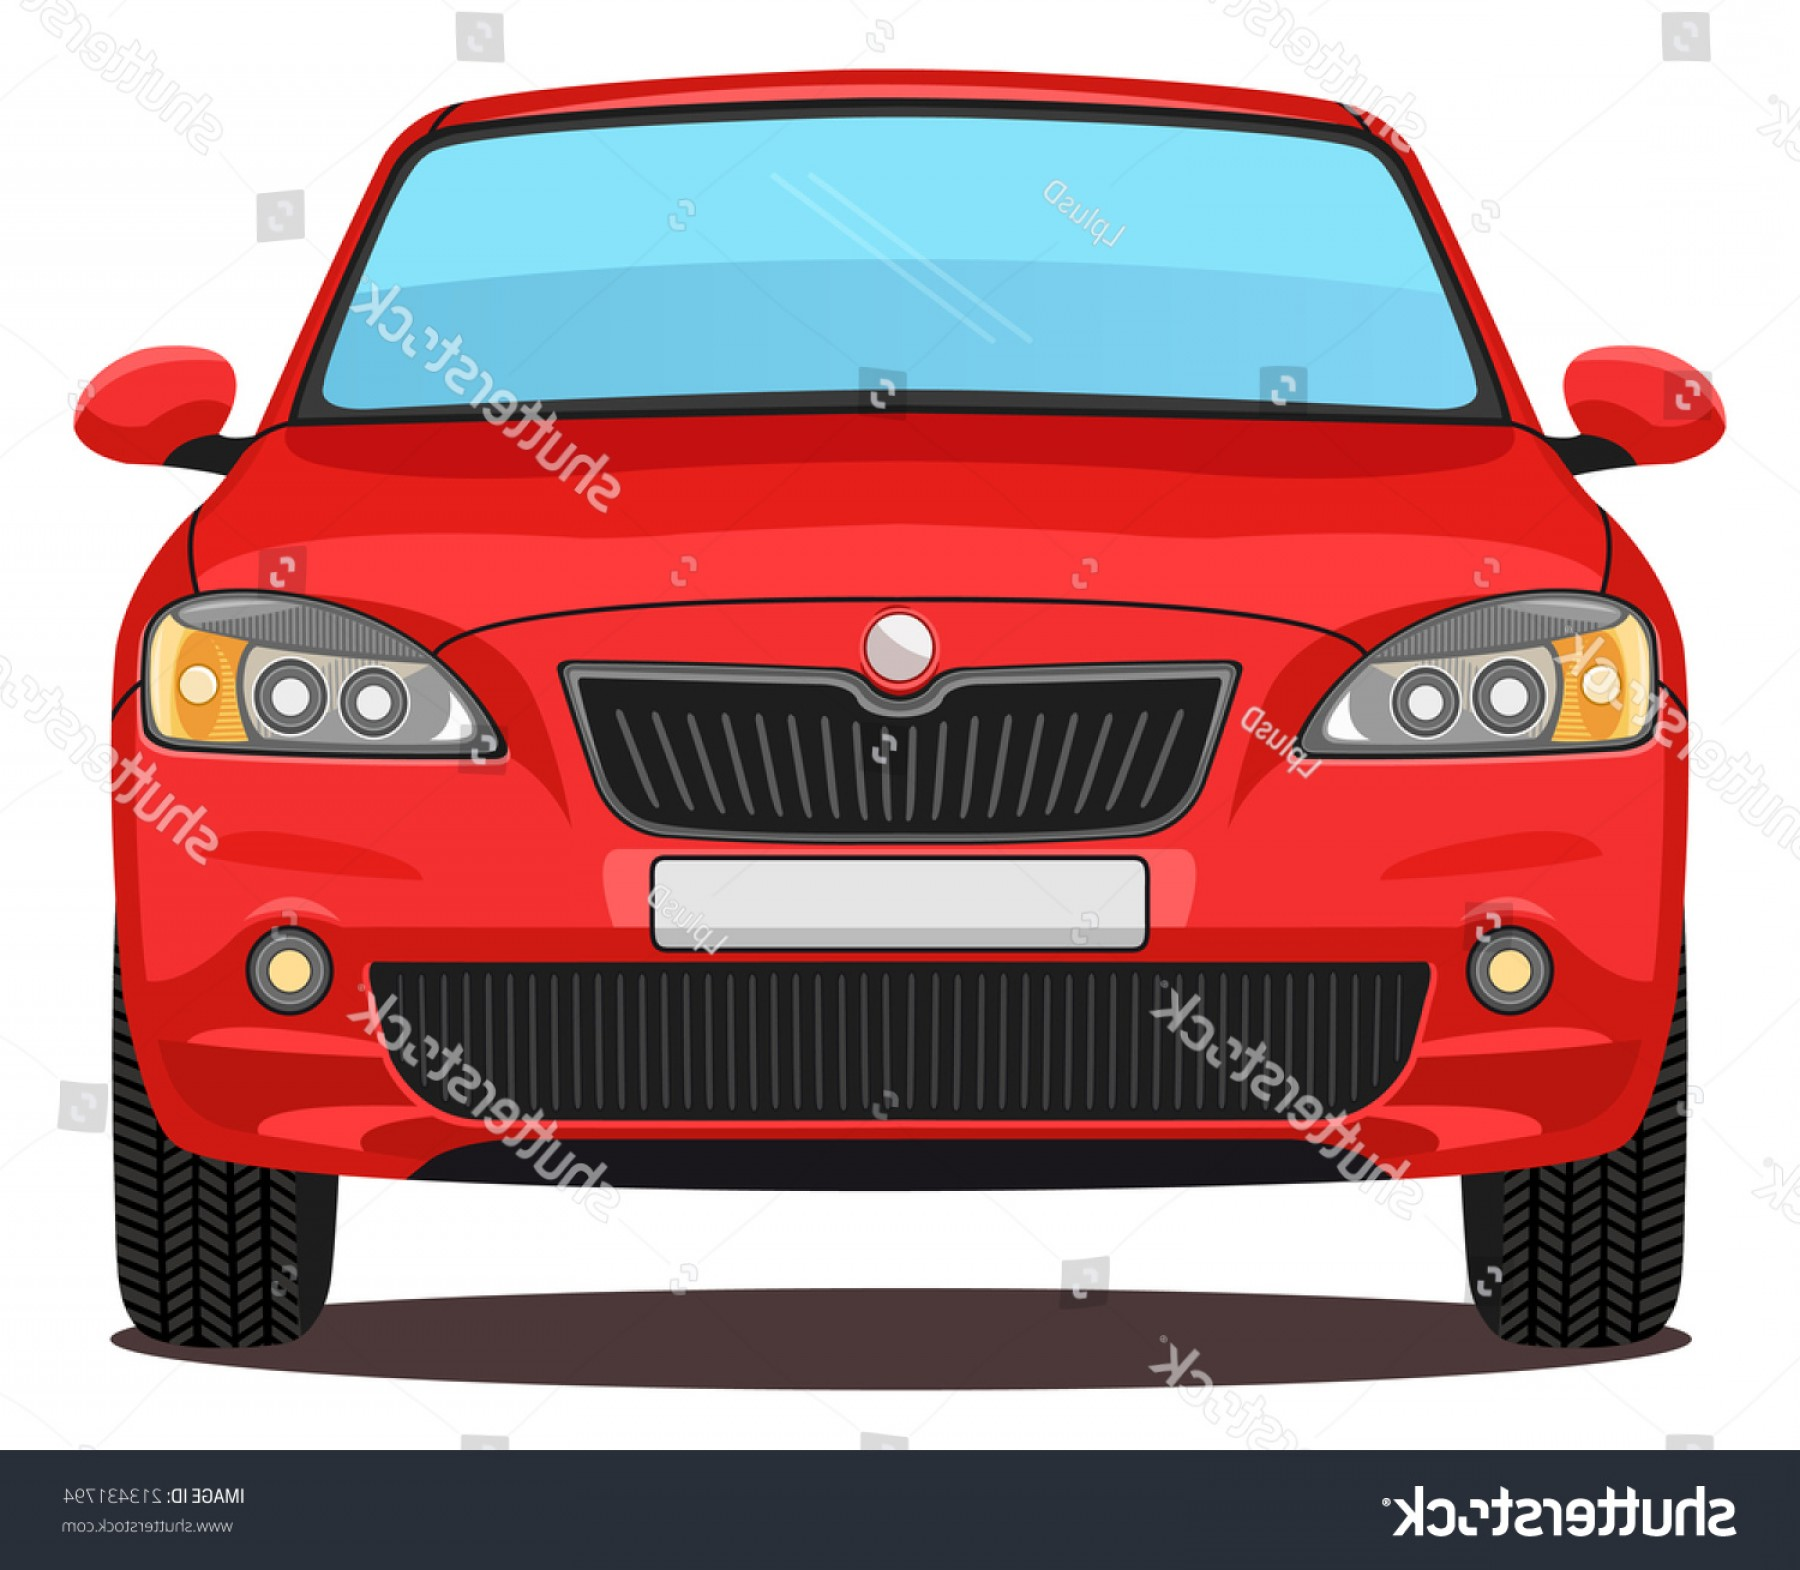 SUV Car Elevation Vector: Vector Red Car Front View